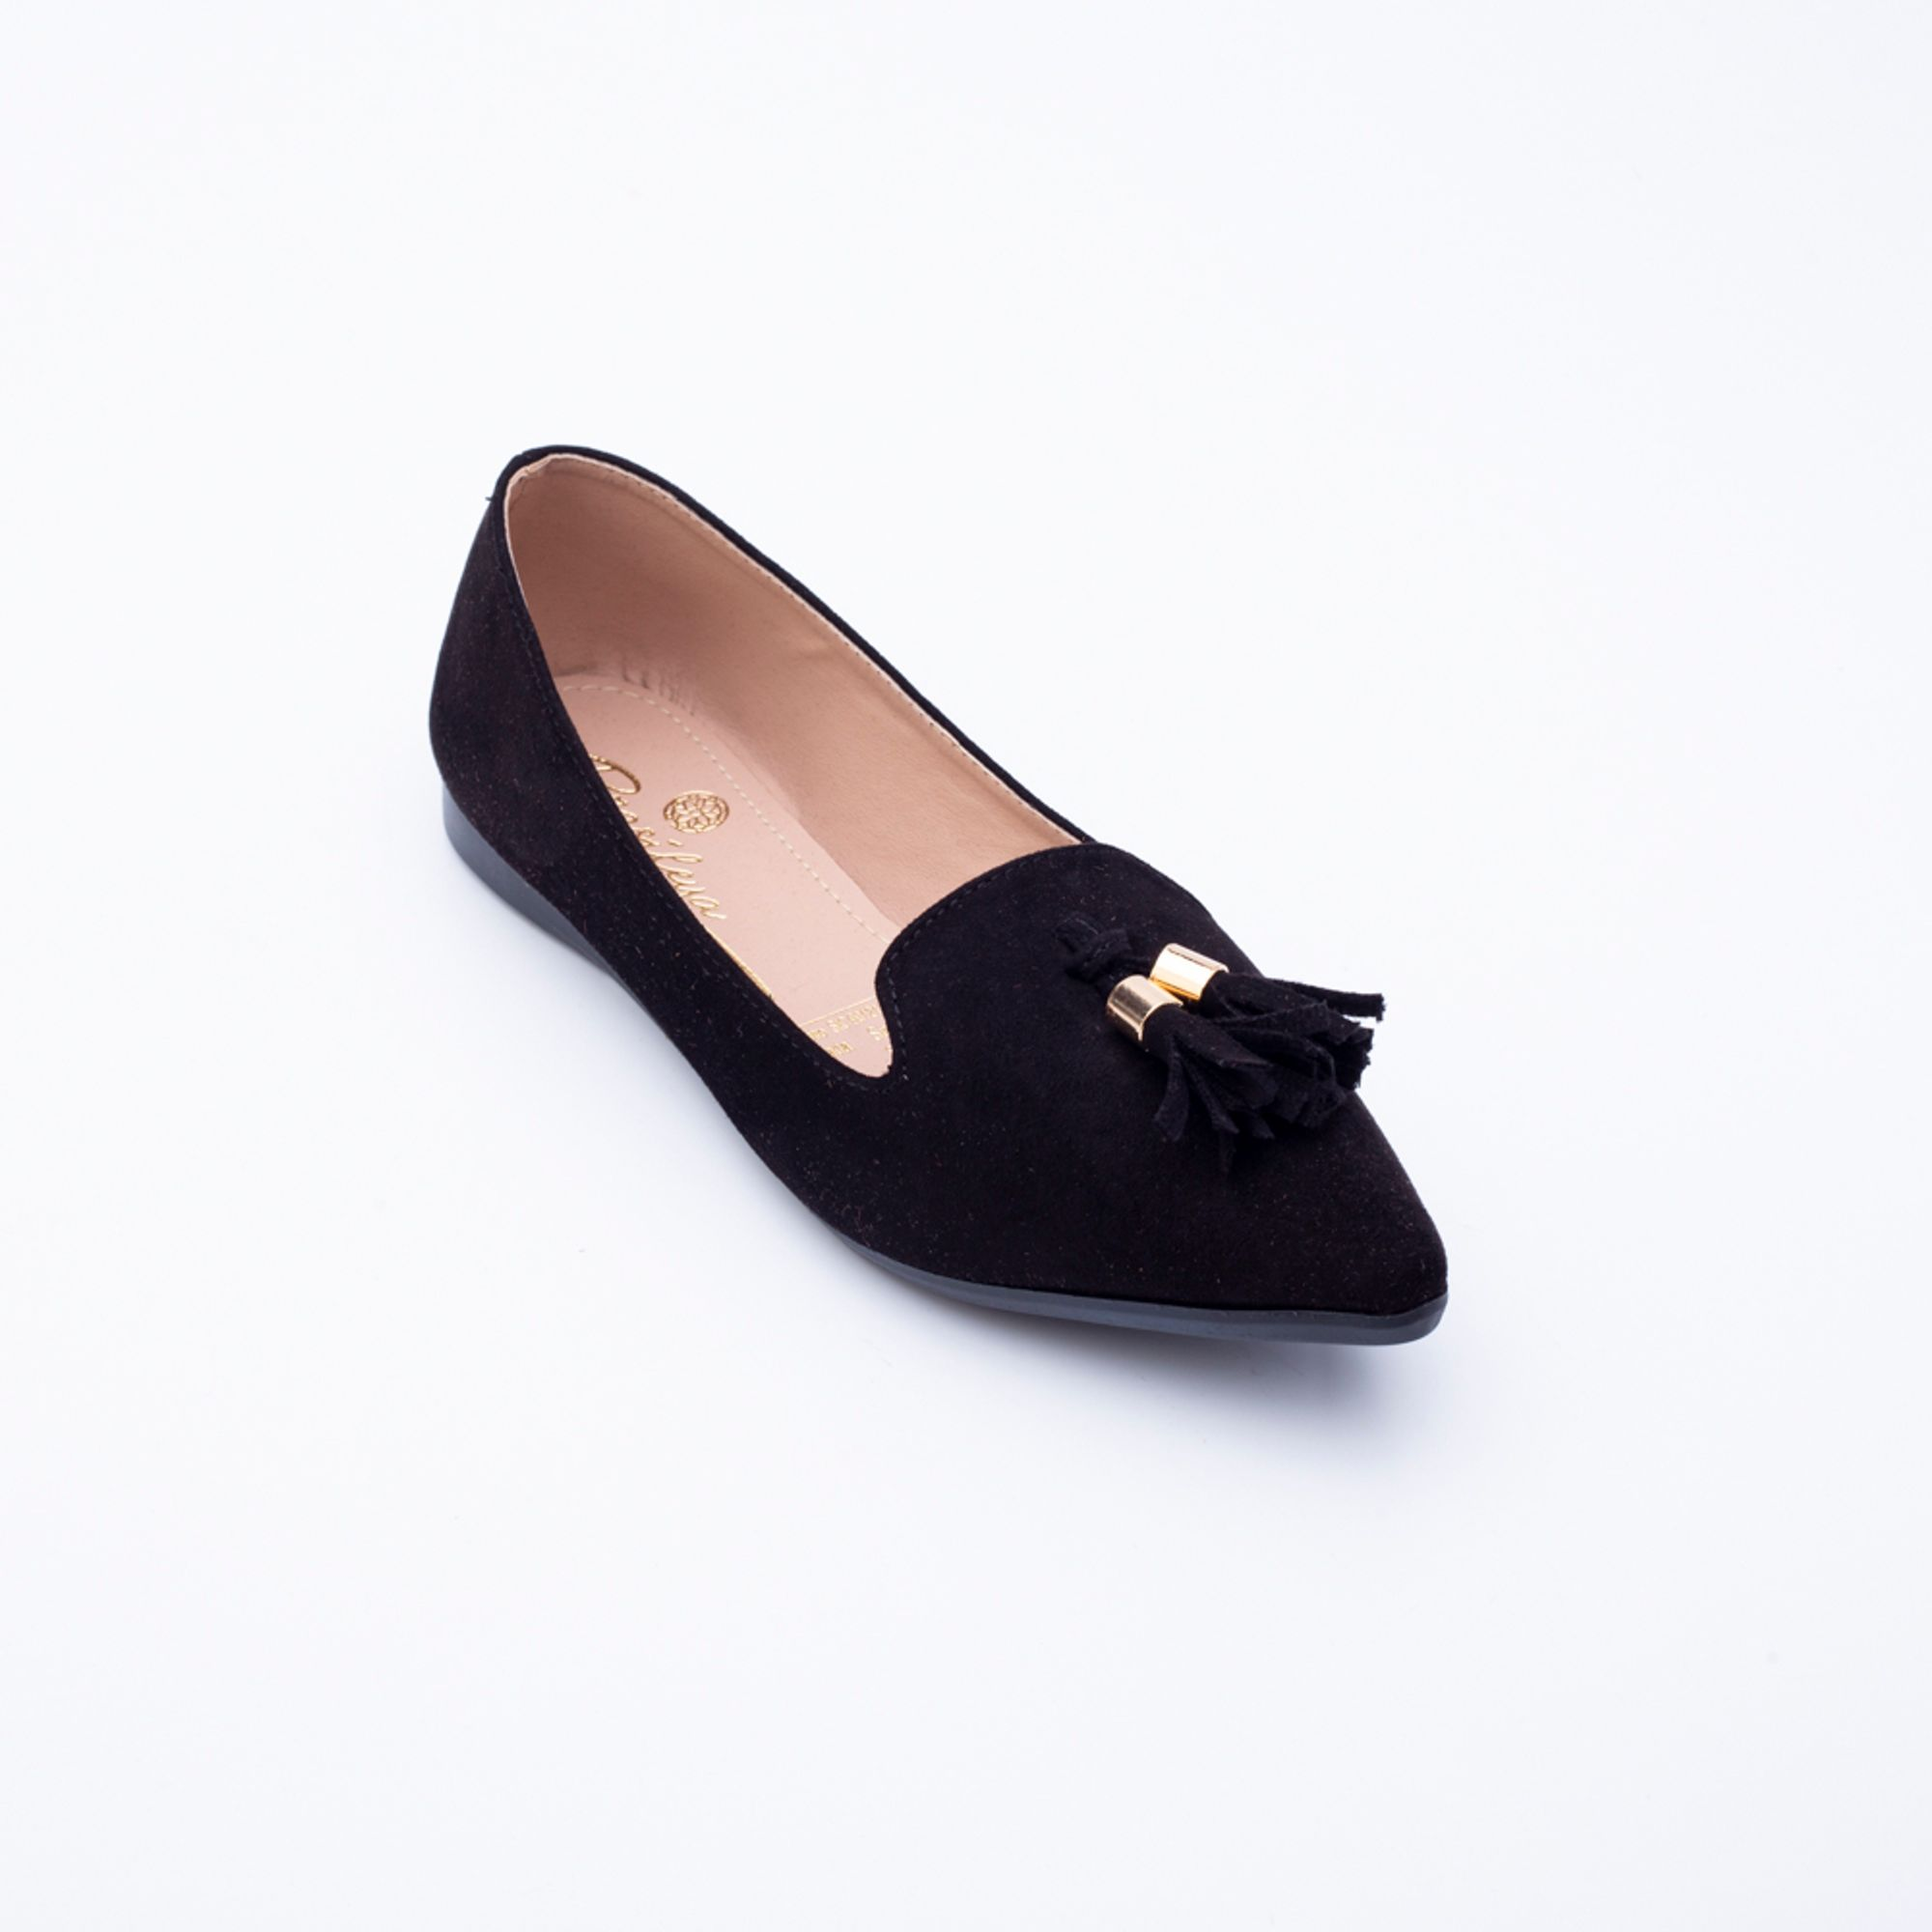 ZAPATOS-CASUALES-BRASILEYA-MUJER-SP-015-IN-BL-MM-PL-S